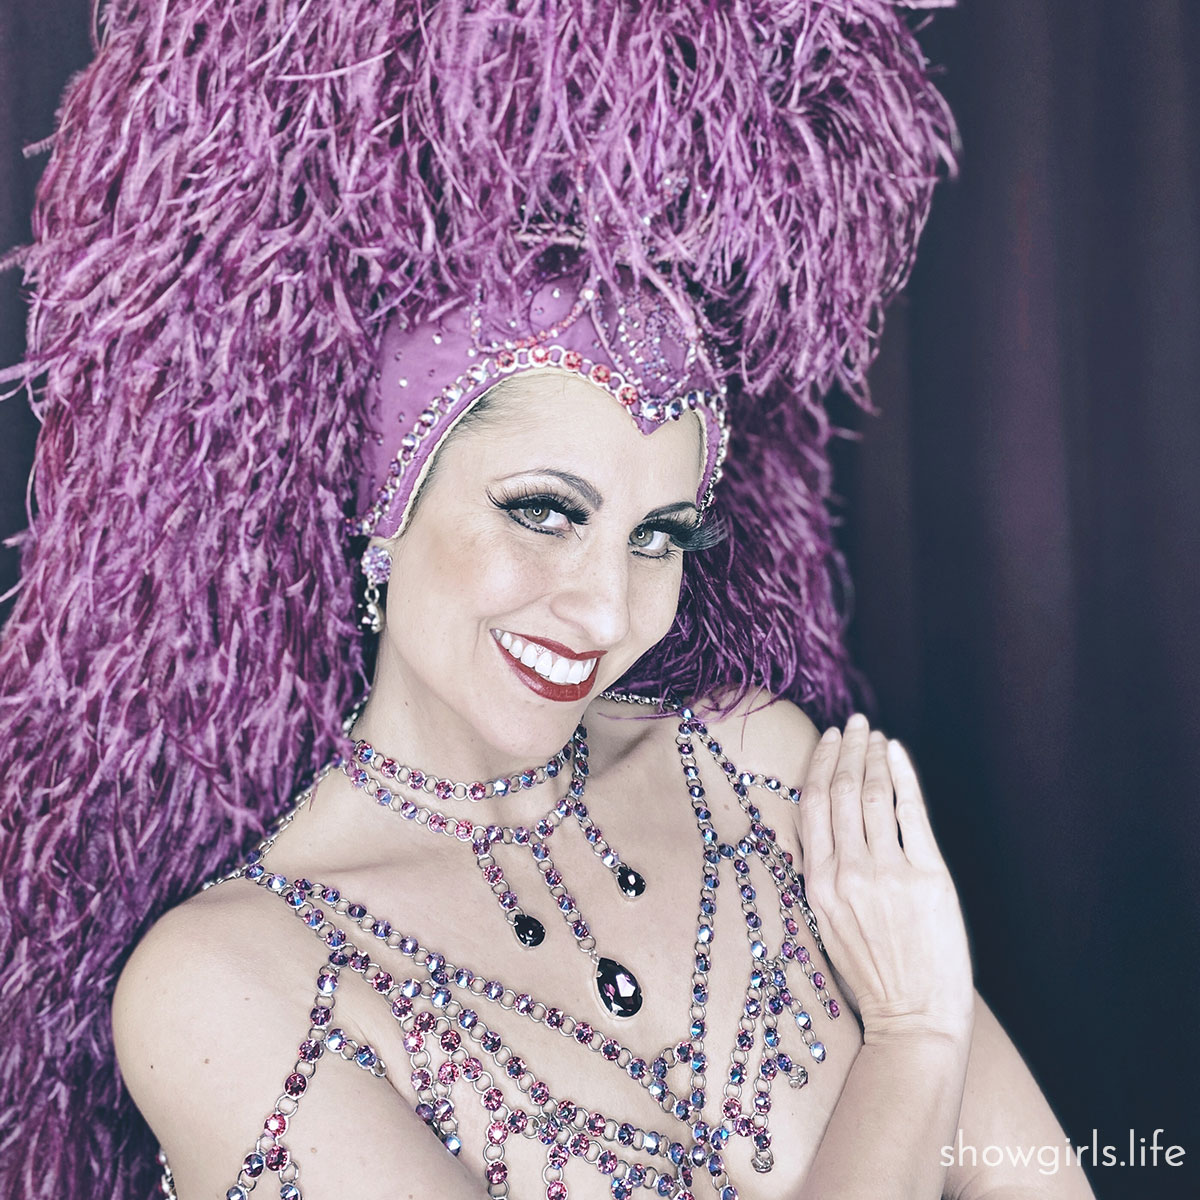 Showgirl's Life   Love Showgirls costume designed by Athena Patacsil